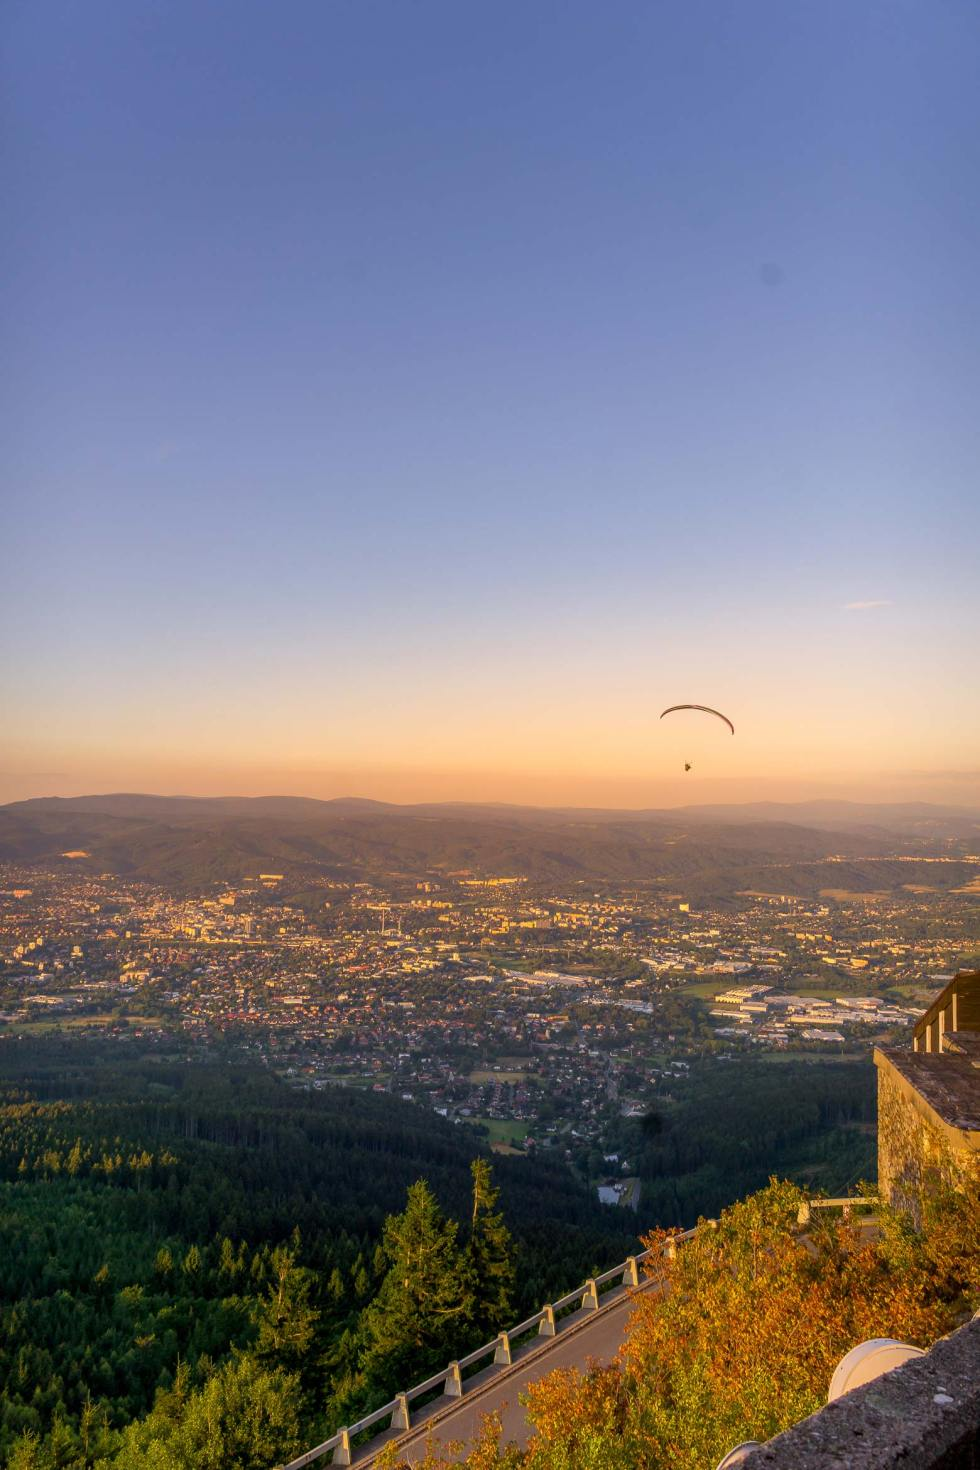 hang gliding in the Czech Republic